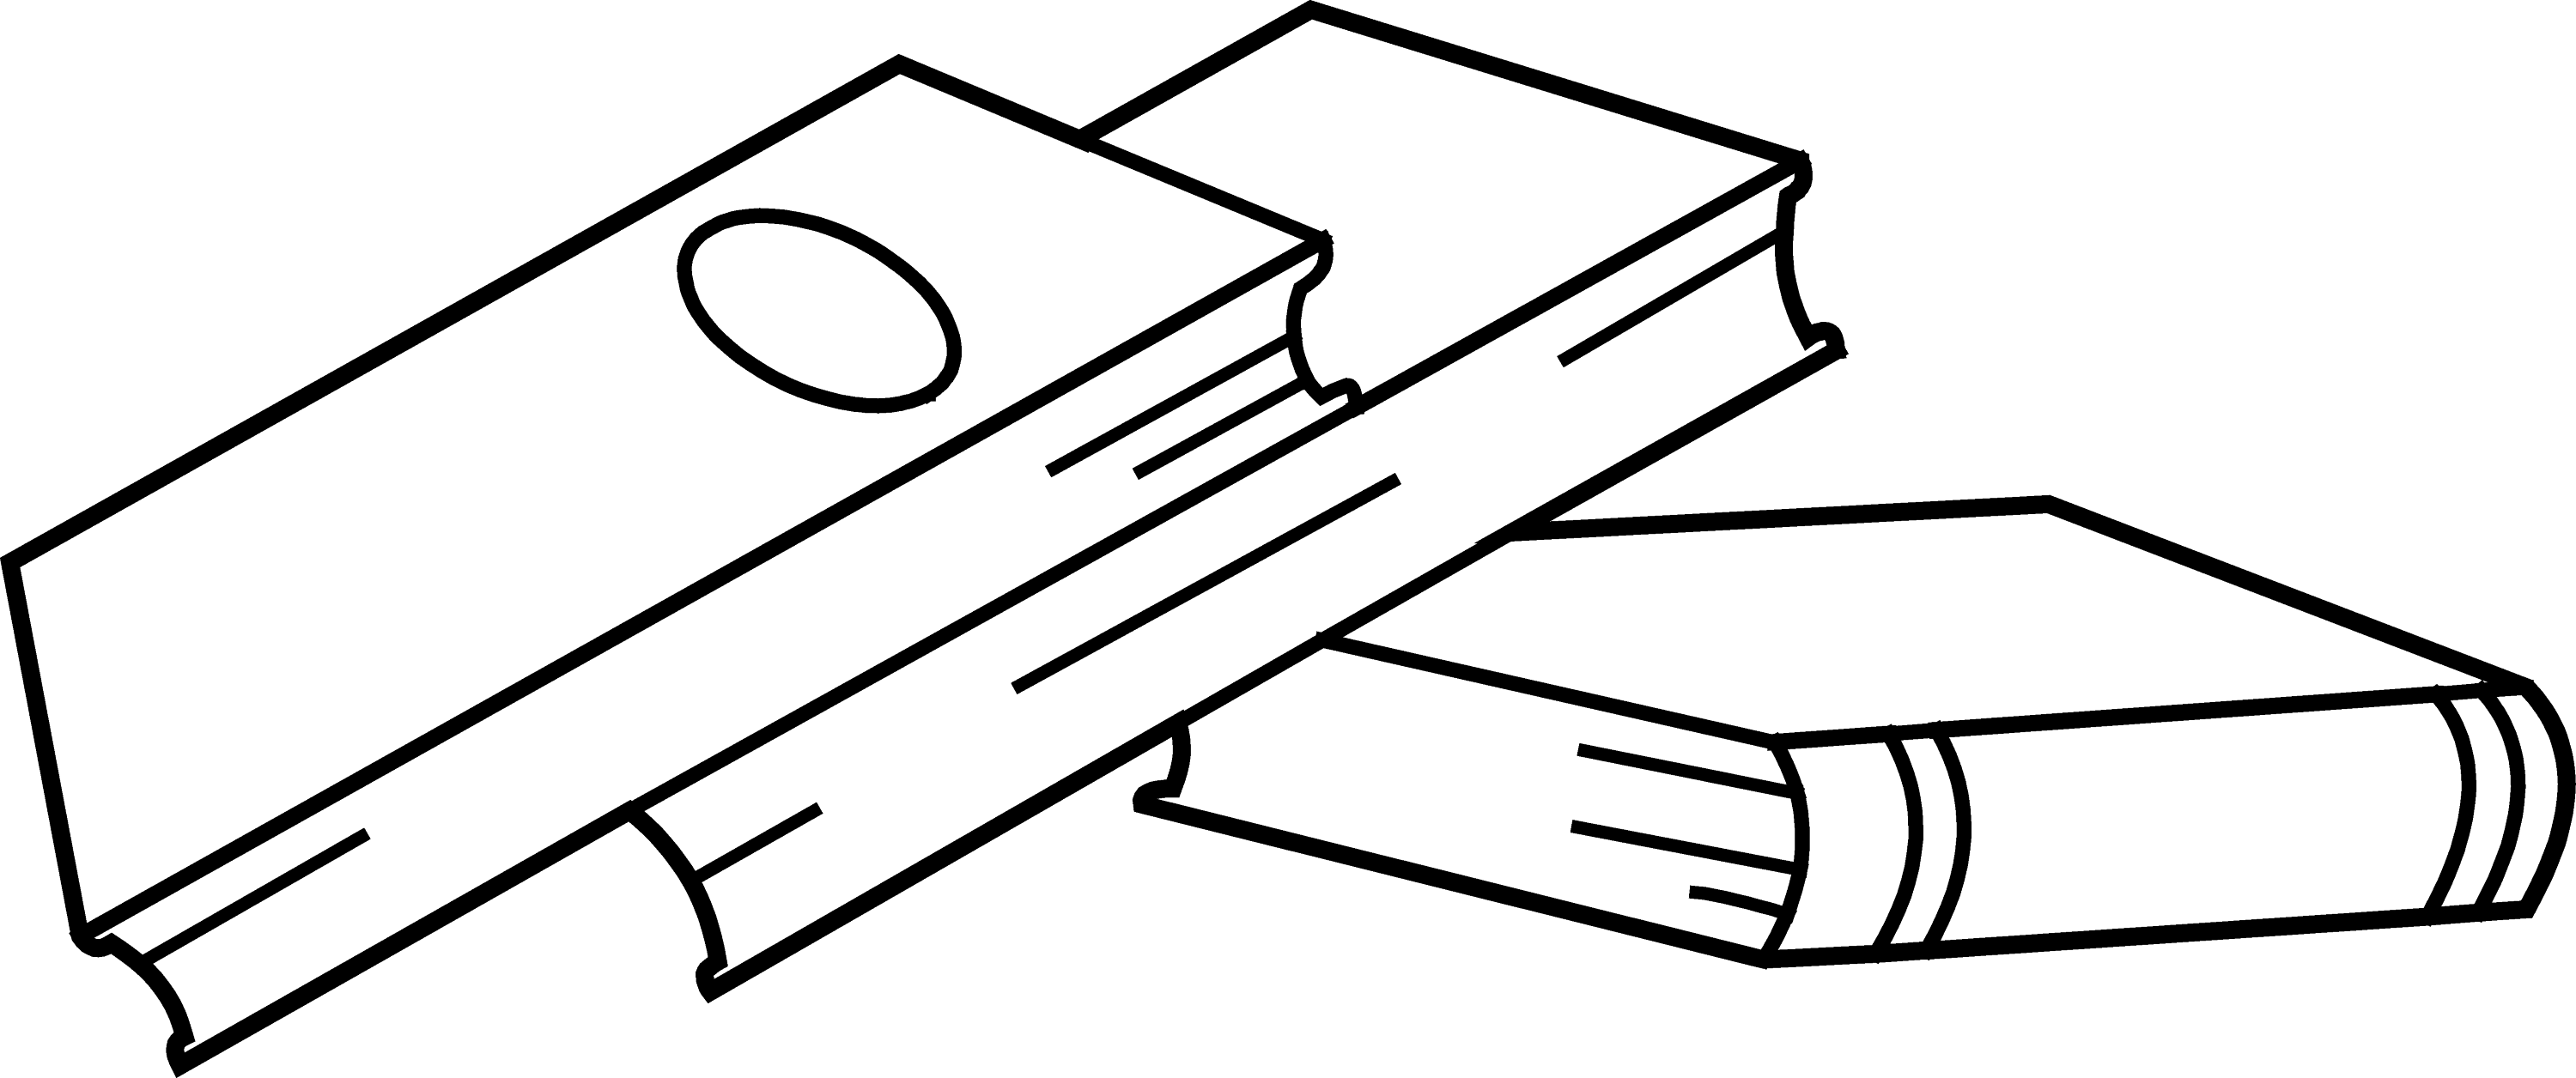 Stack of Books Coloring Page - Free Clip Art